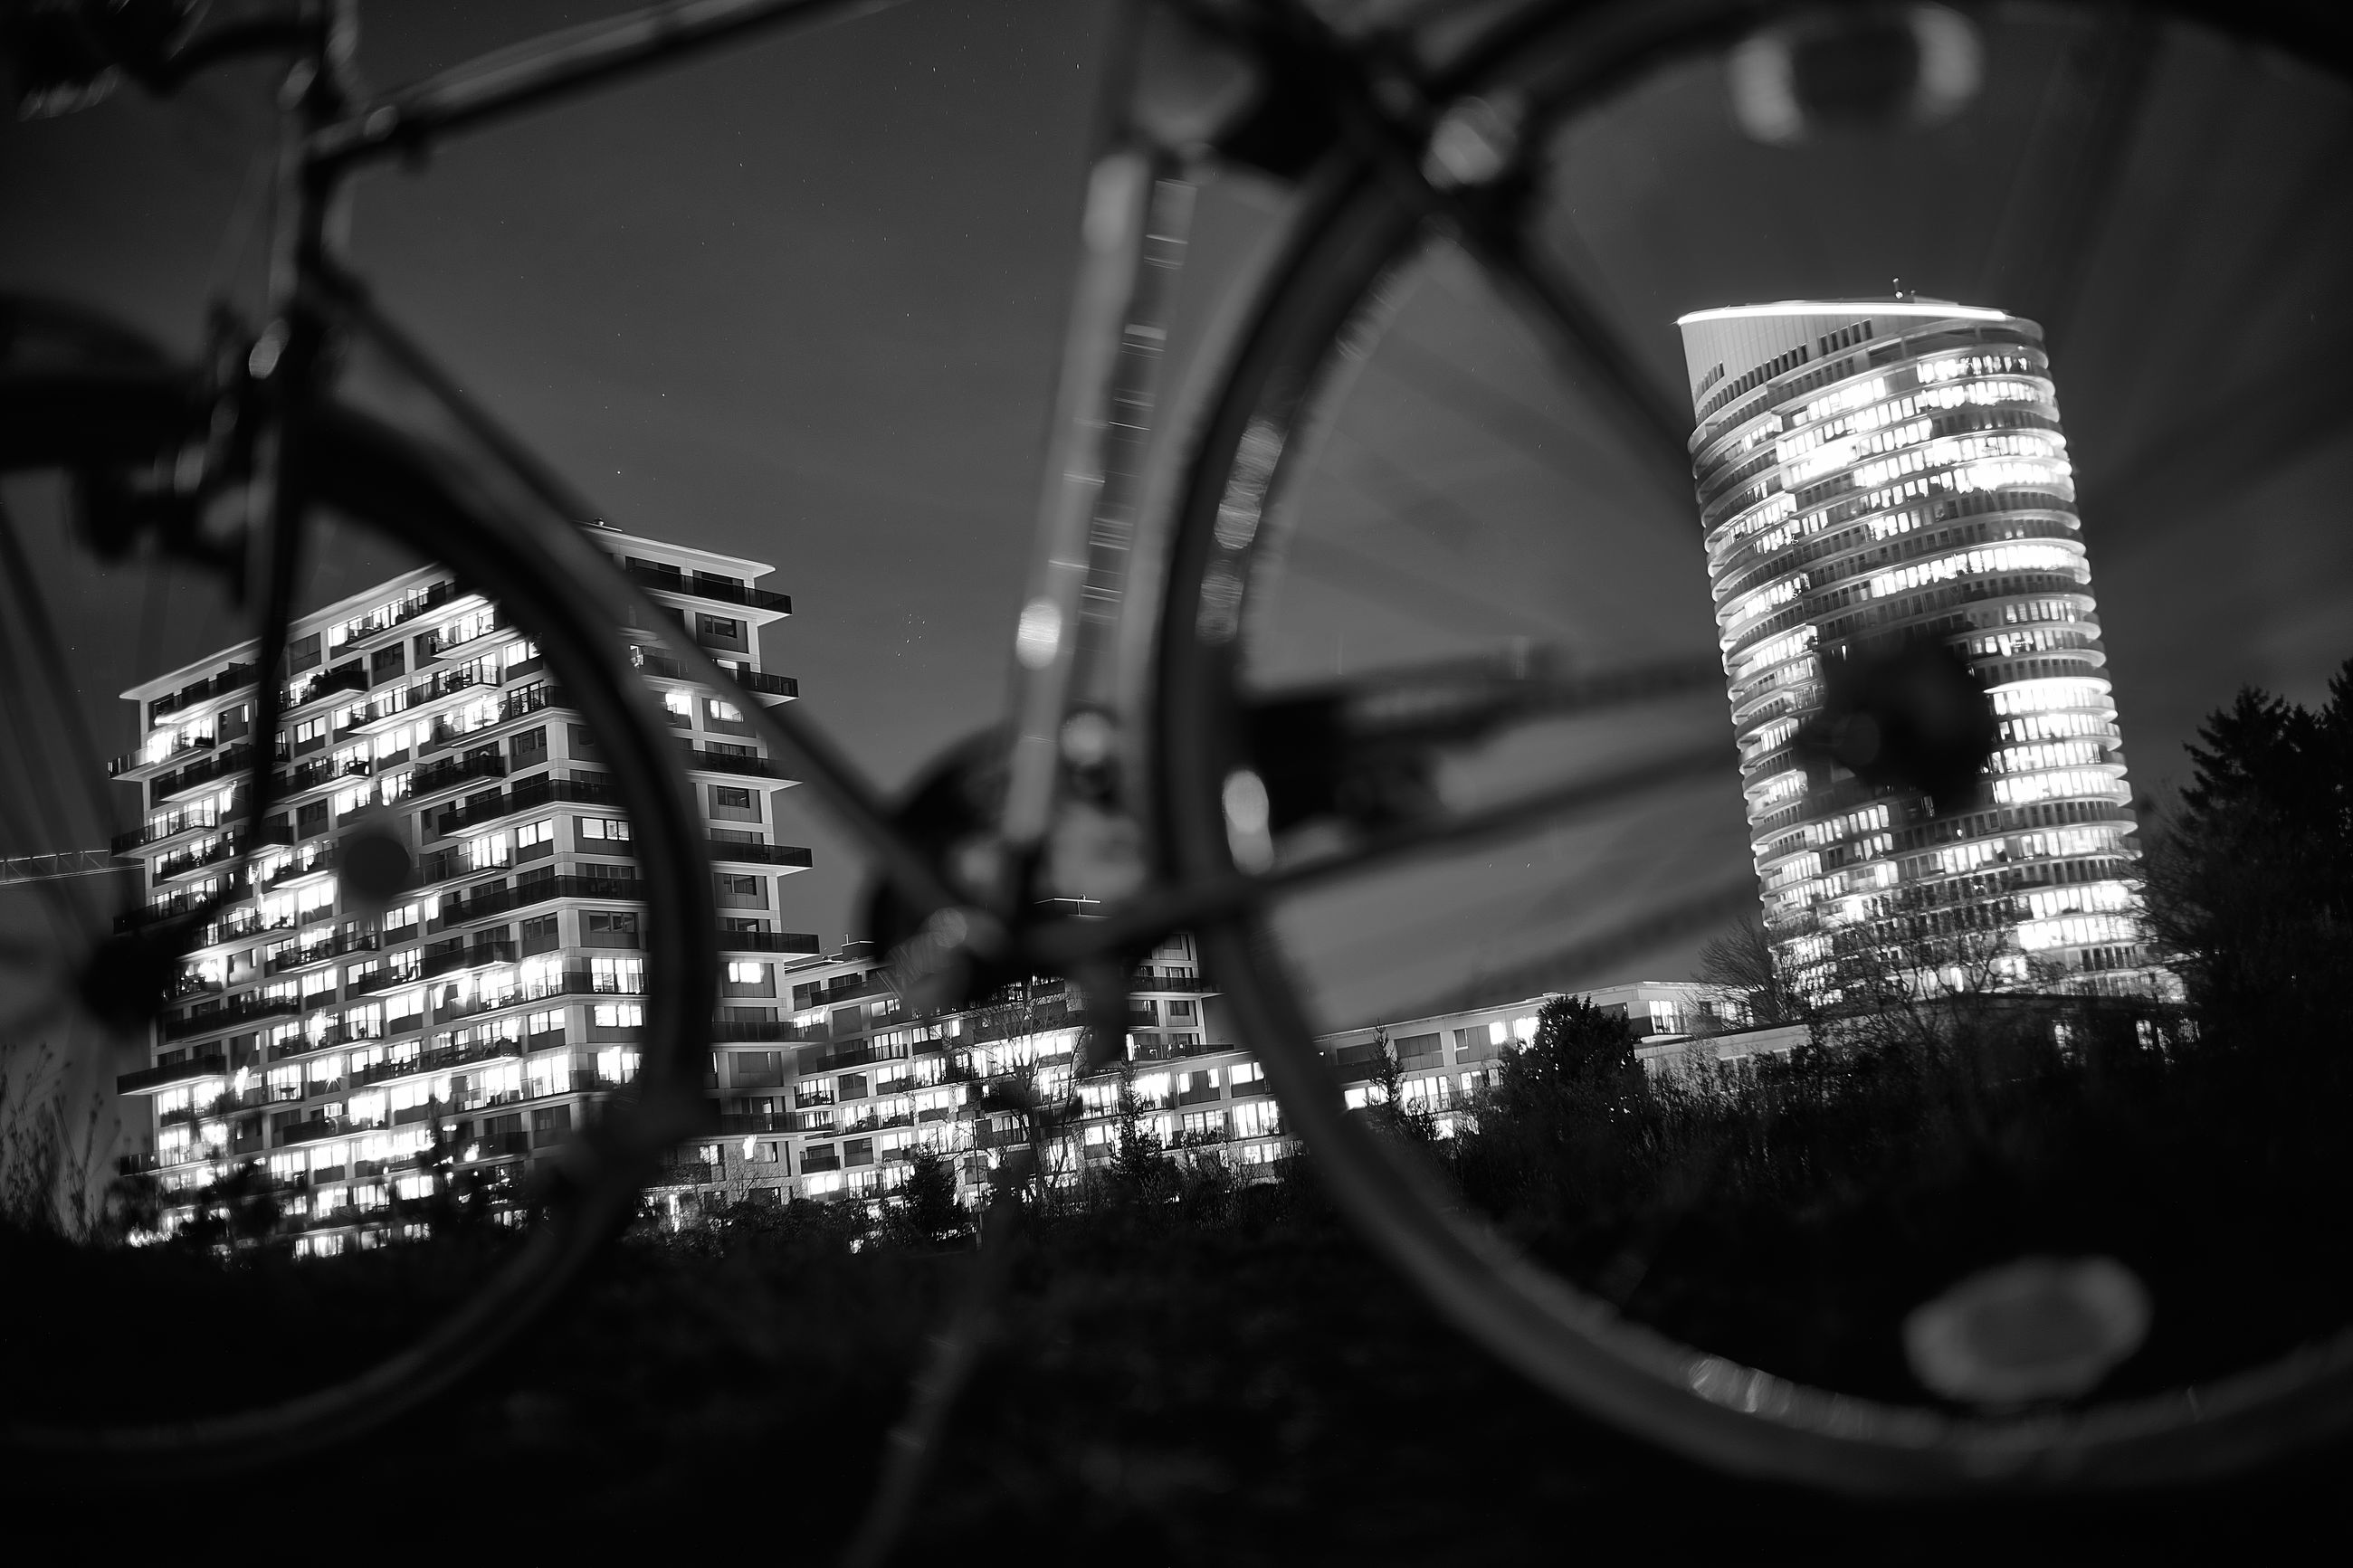 black, black and white, light, architecture, built structure, darkness, white, no people, monochrome, monochrome photography, transportation, selective focus, city, close-up, building exterior, outdoors, wheel, nature, night